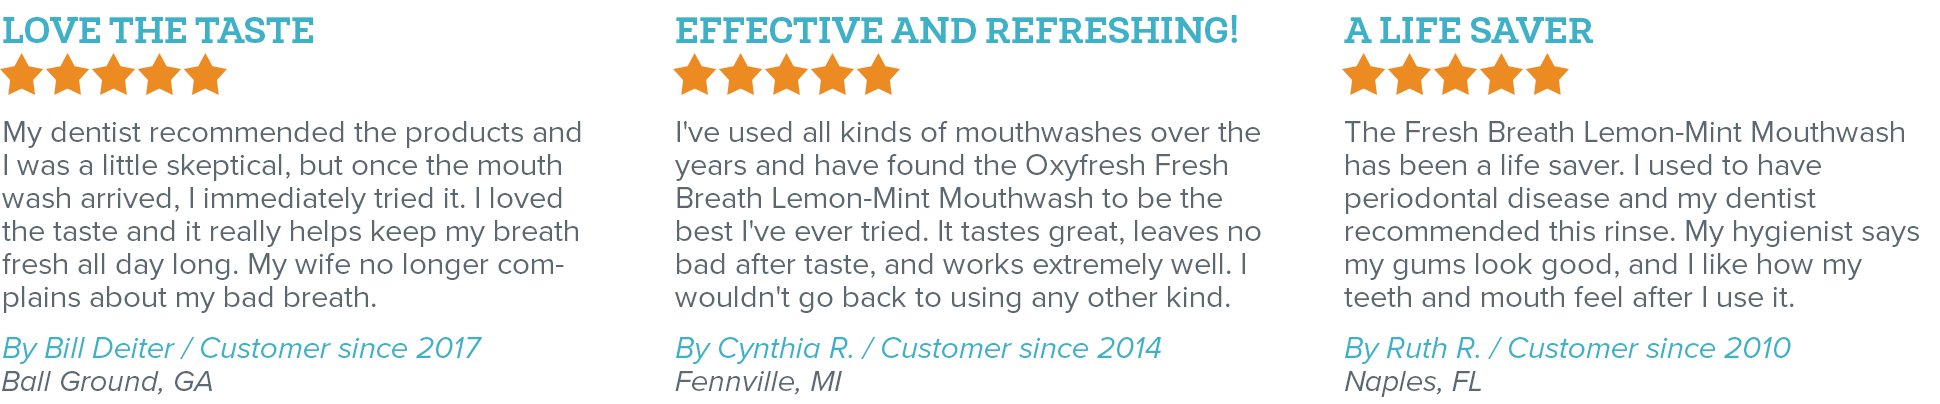 Oxyfresh - Eliminate Bad Breath - Fresh Breath Lemon-Mint Mouthwash Reviews